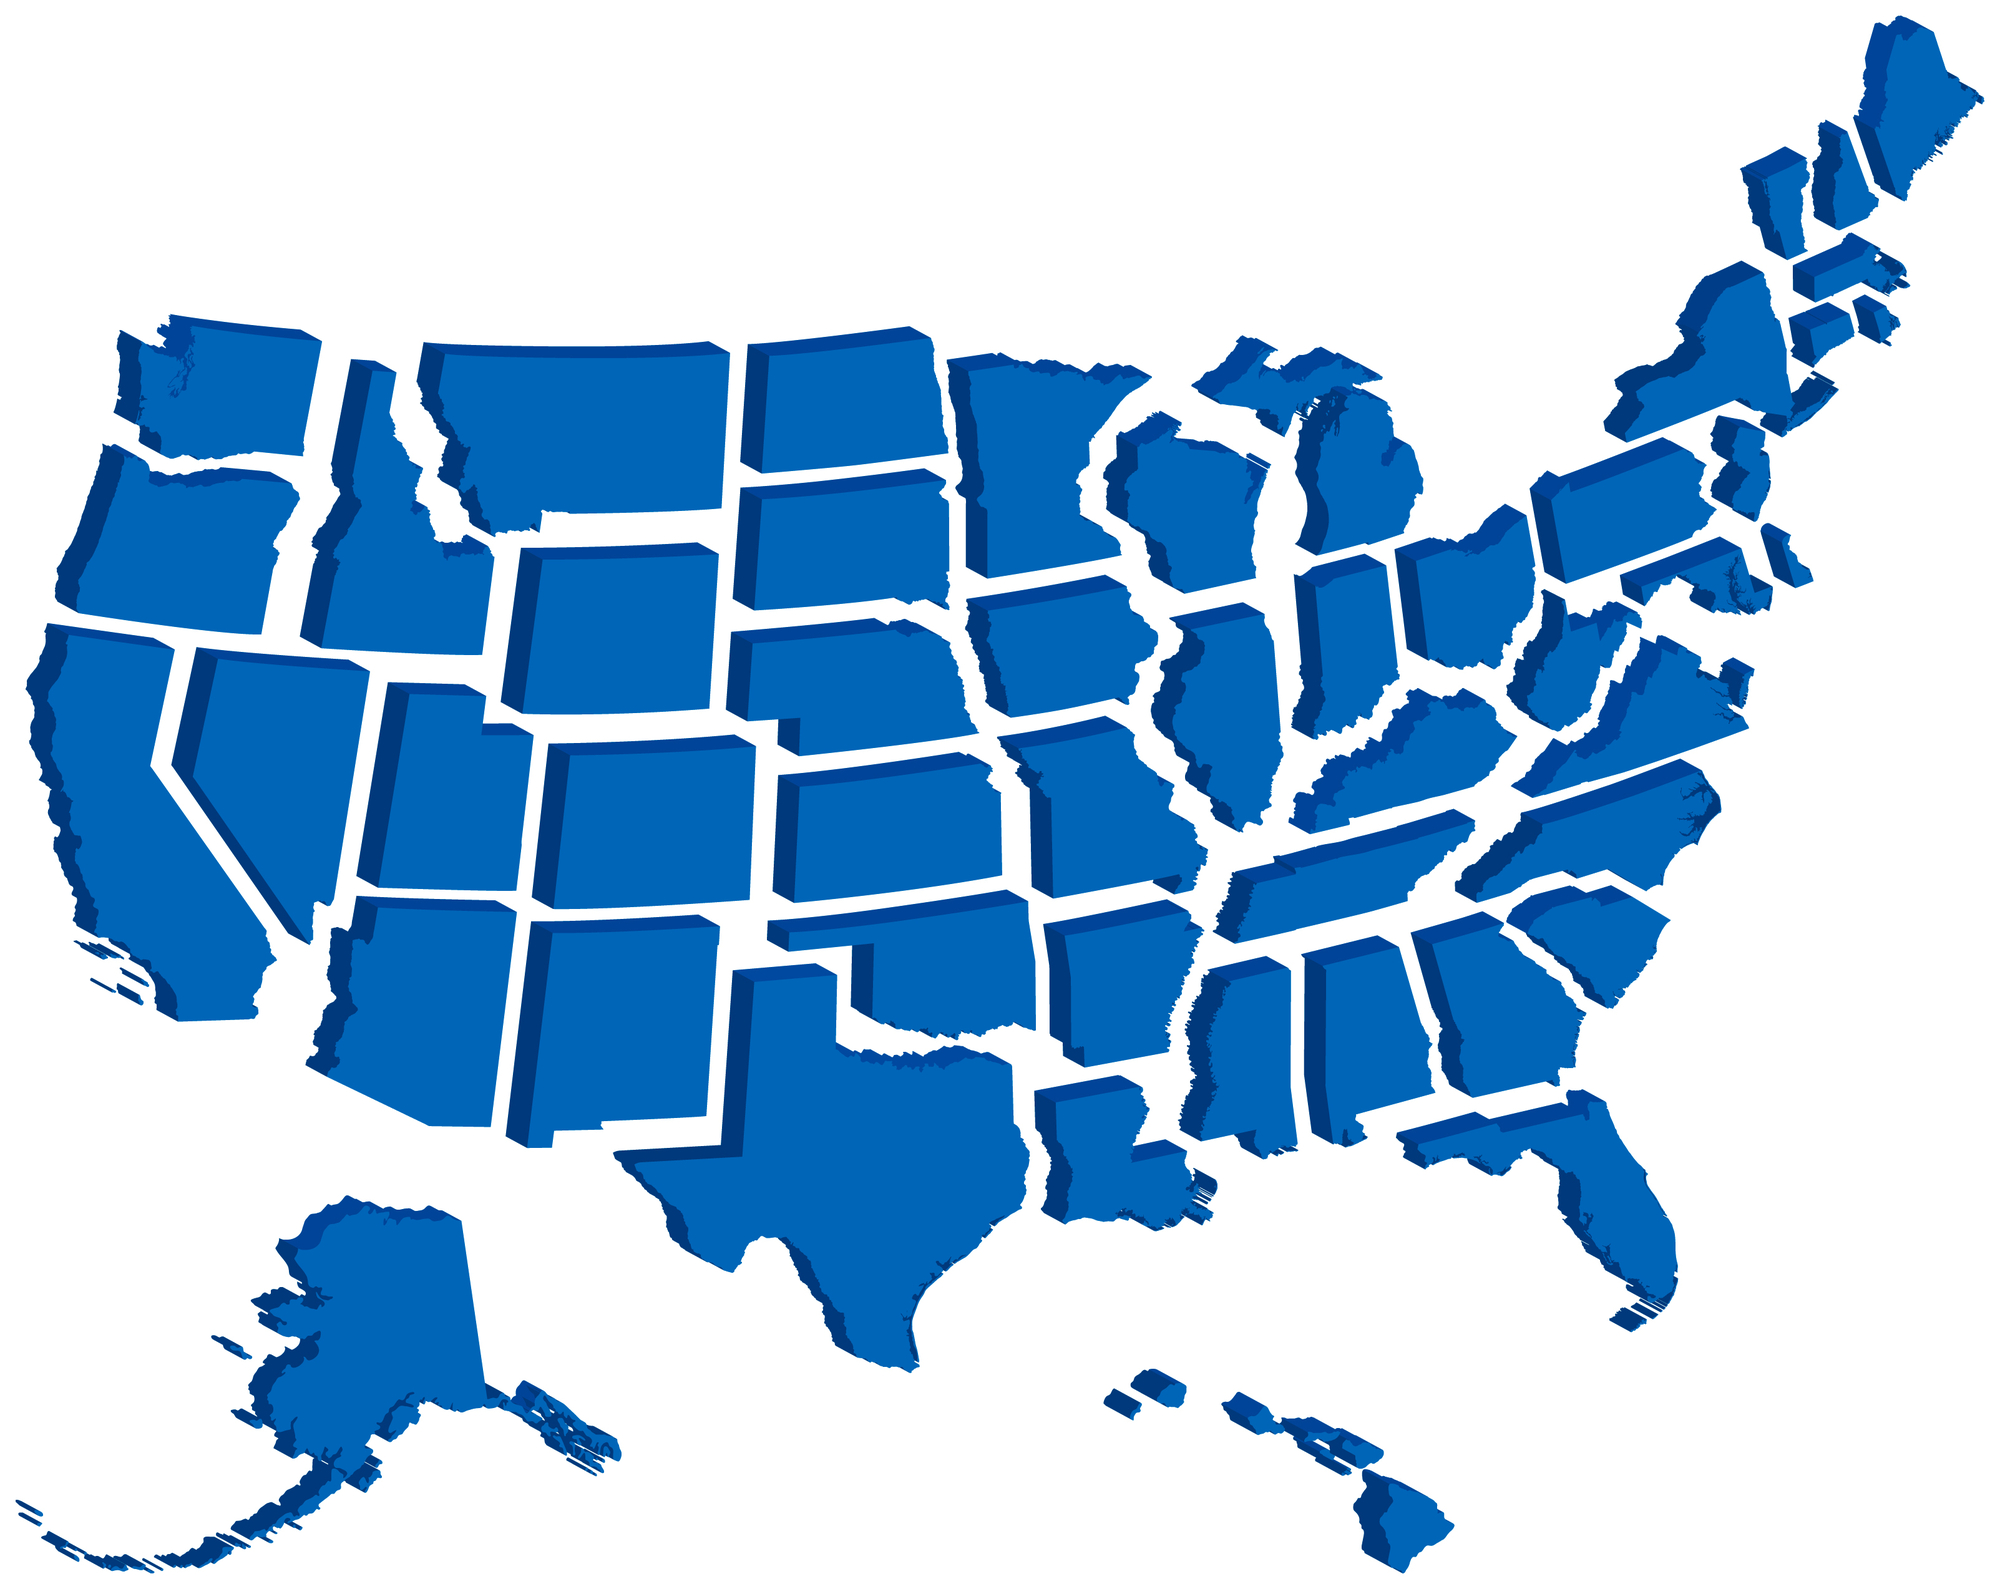 A three-dimensional map of all 50 U.S. states set over a white background.